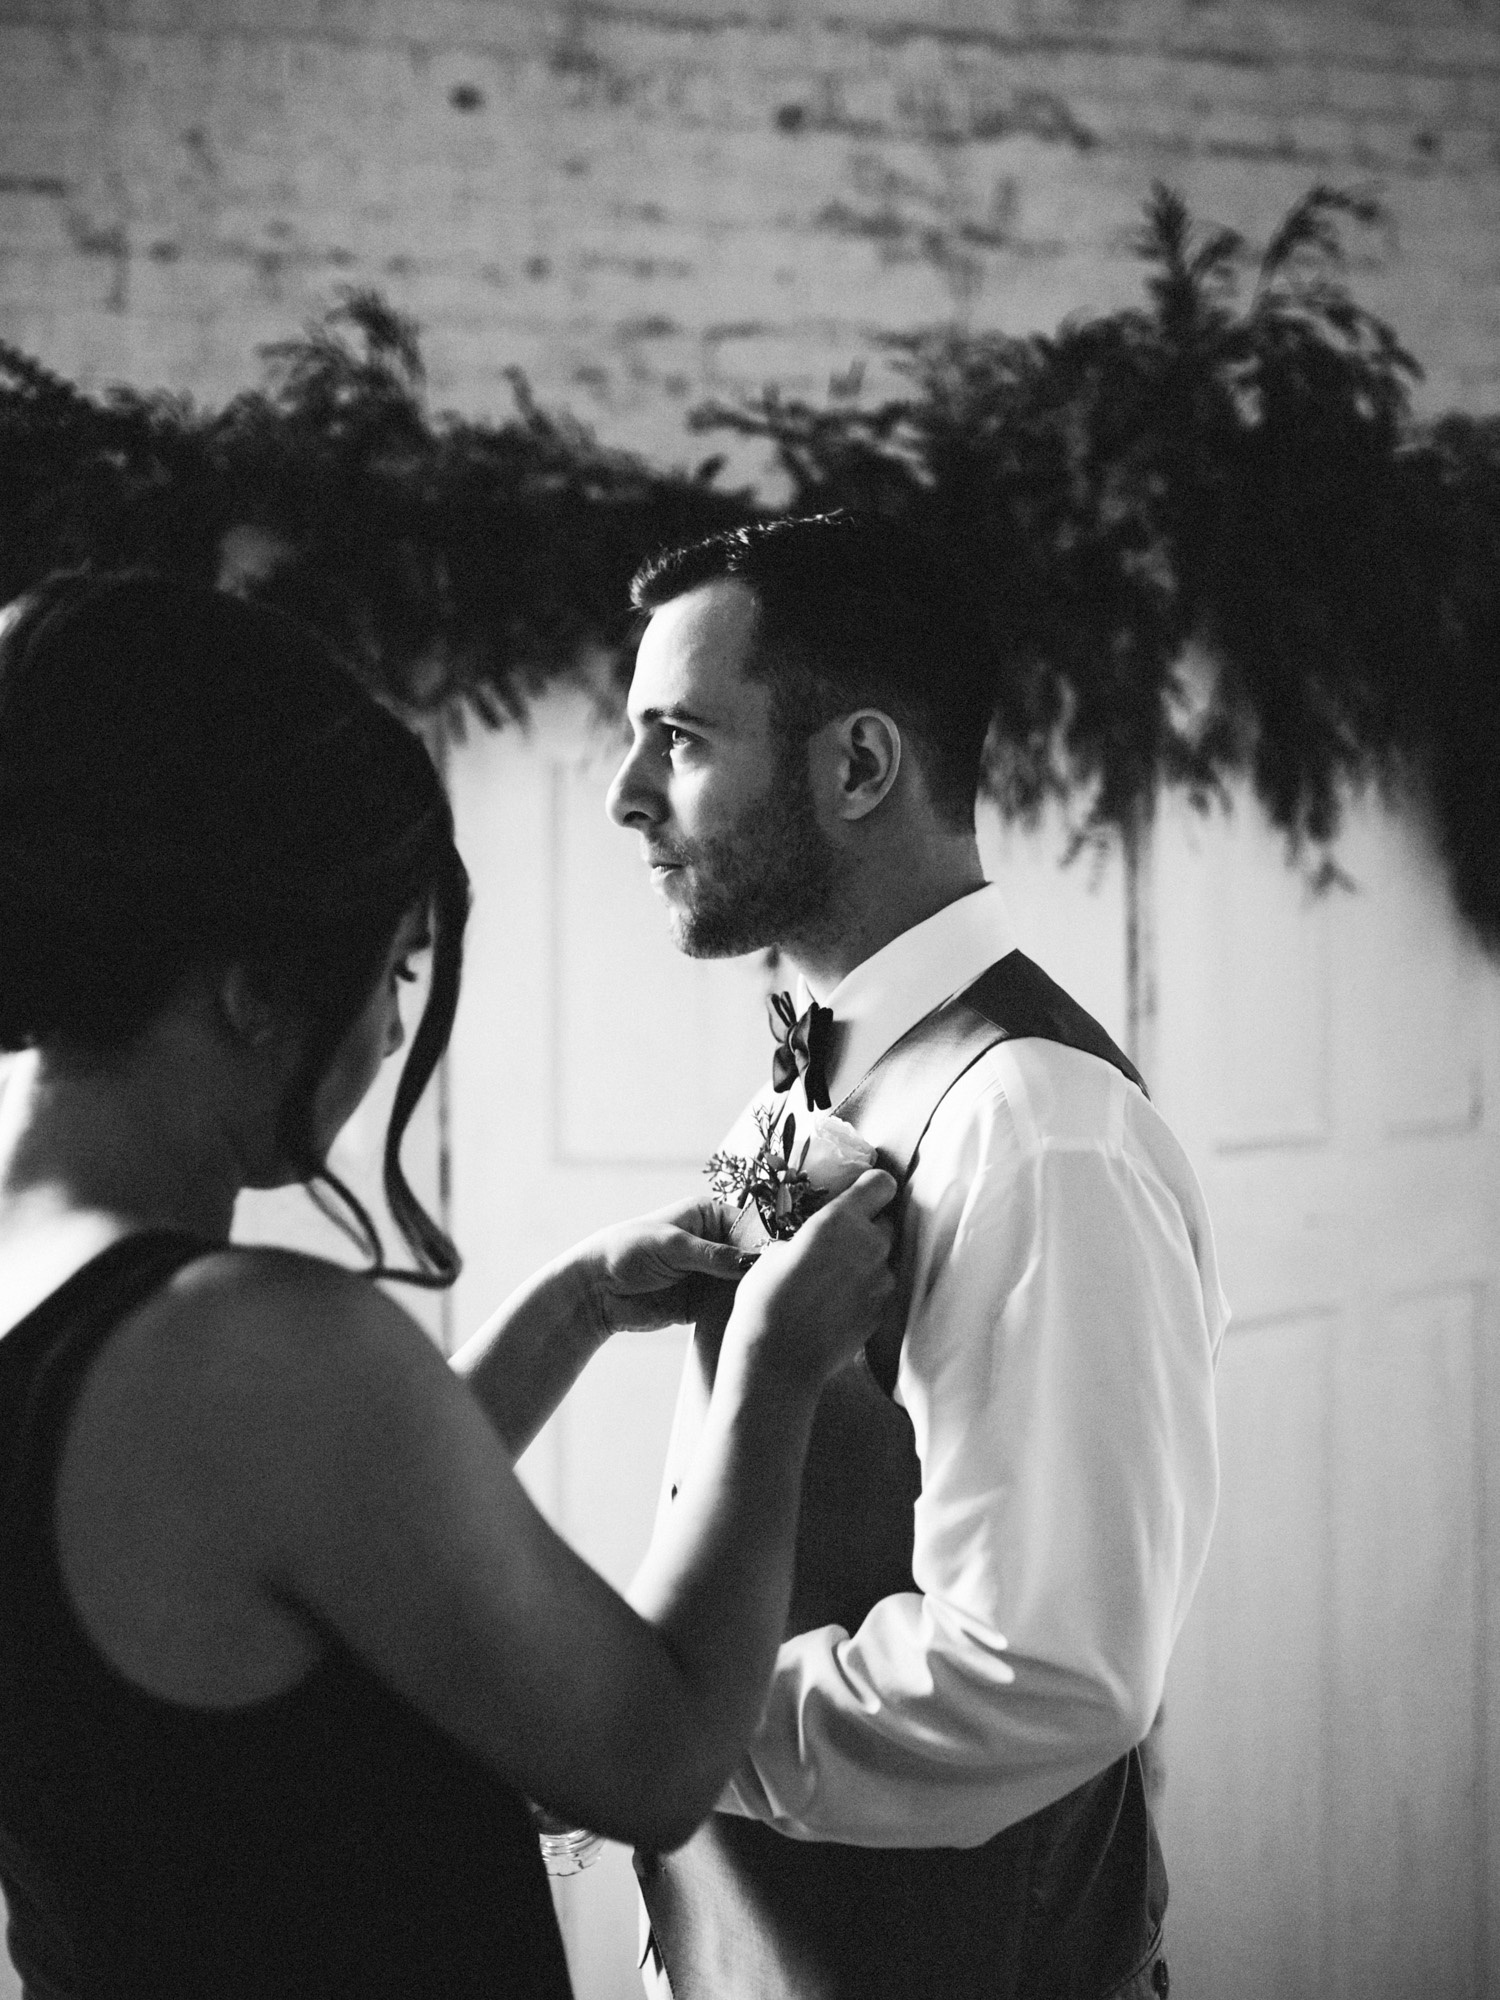 A groom has his boutonniere pinned on at The Brick wedding venue